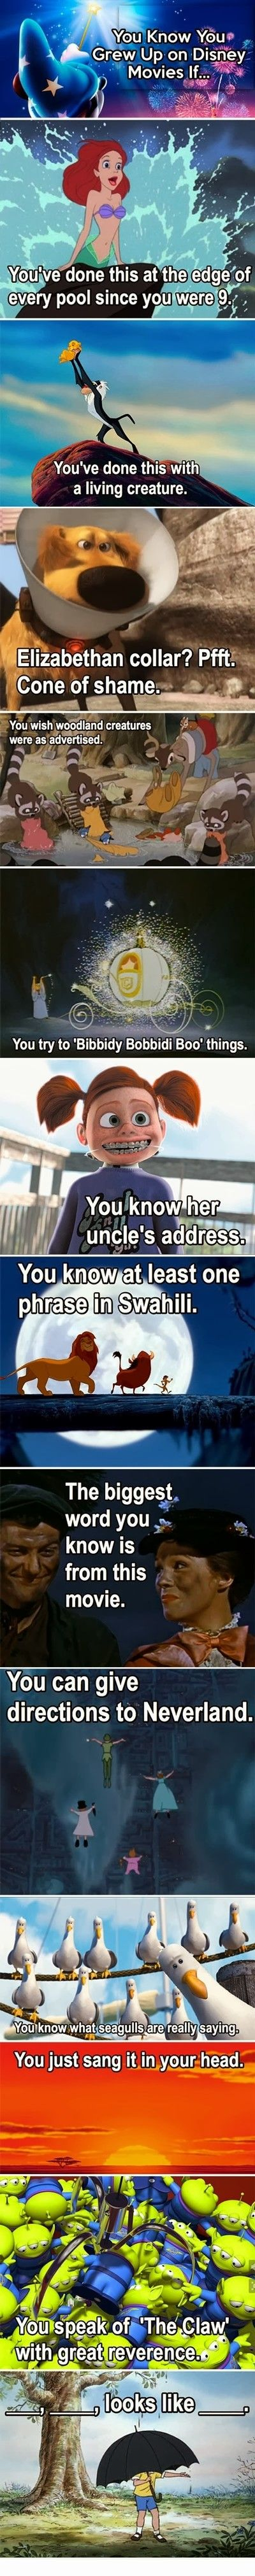 you know you grew up on Disney movies if.... | See more about disney movies, disney and movies.